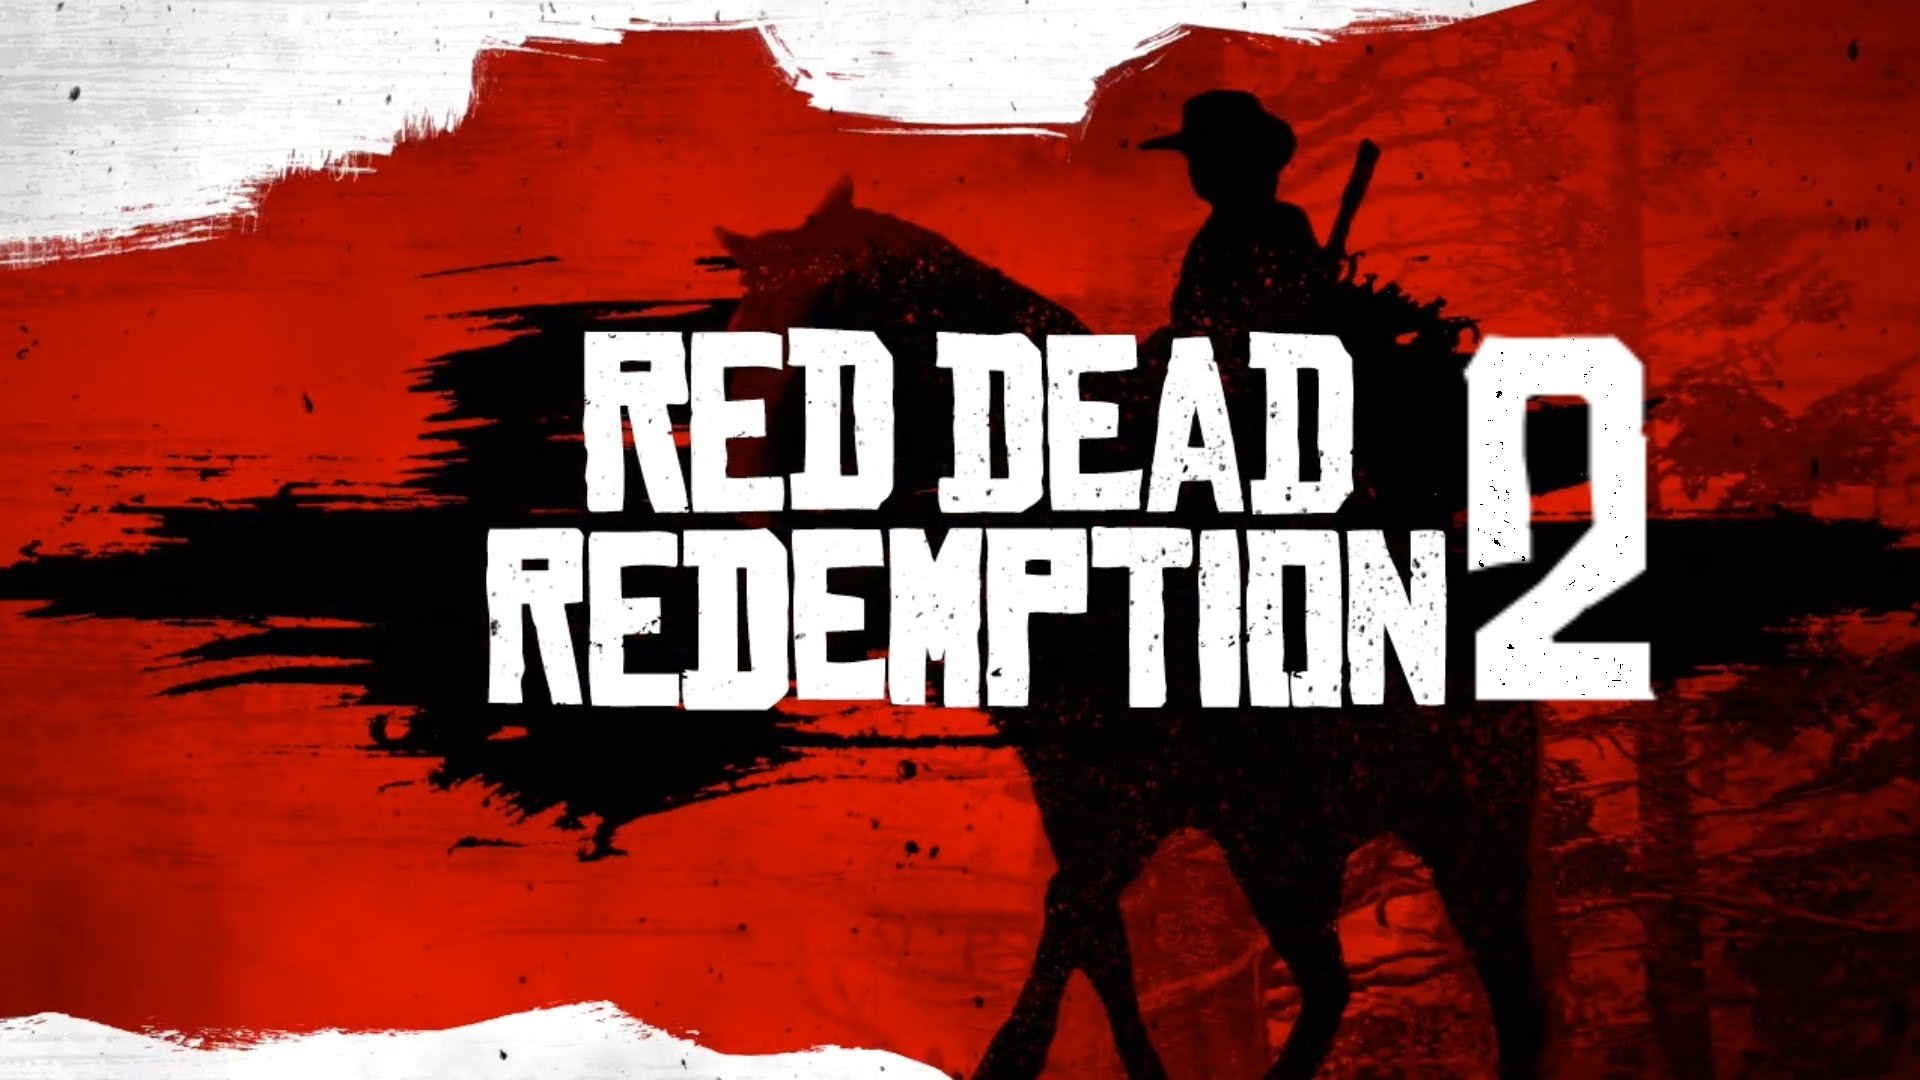 download red dead redemption 2 hd wallpapers | playstation, xbox